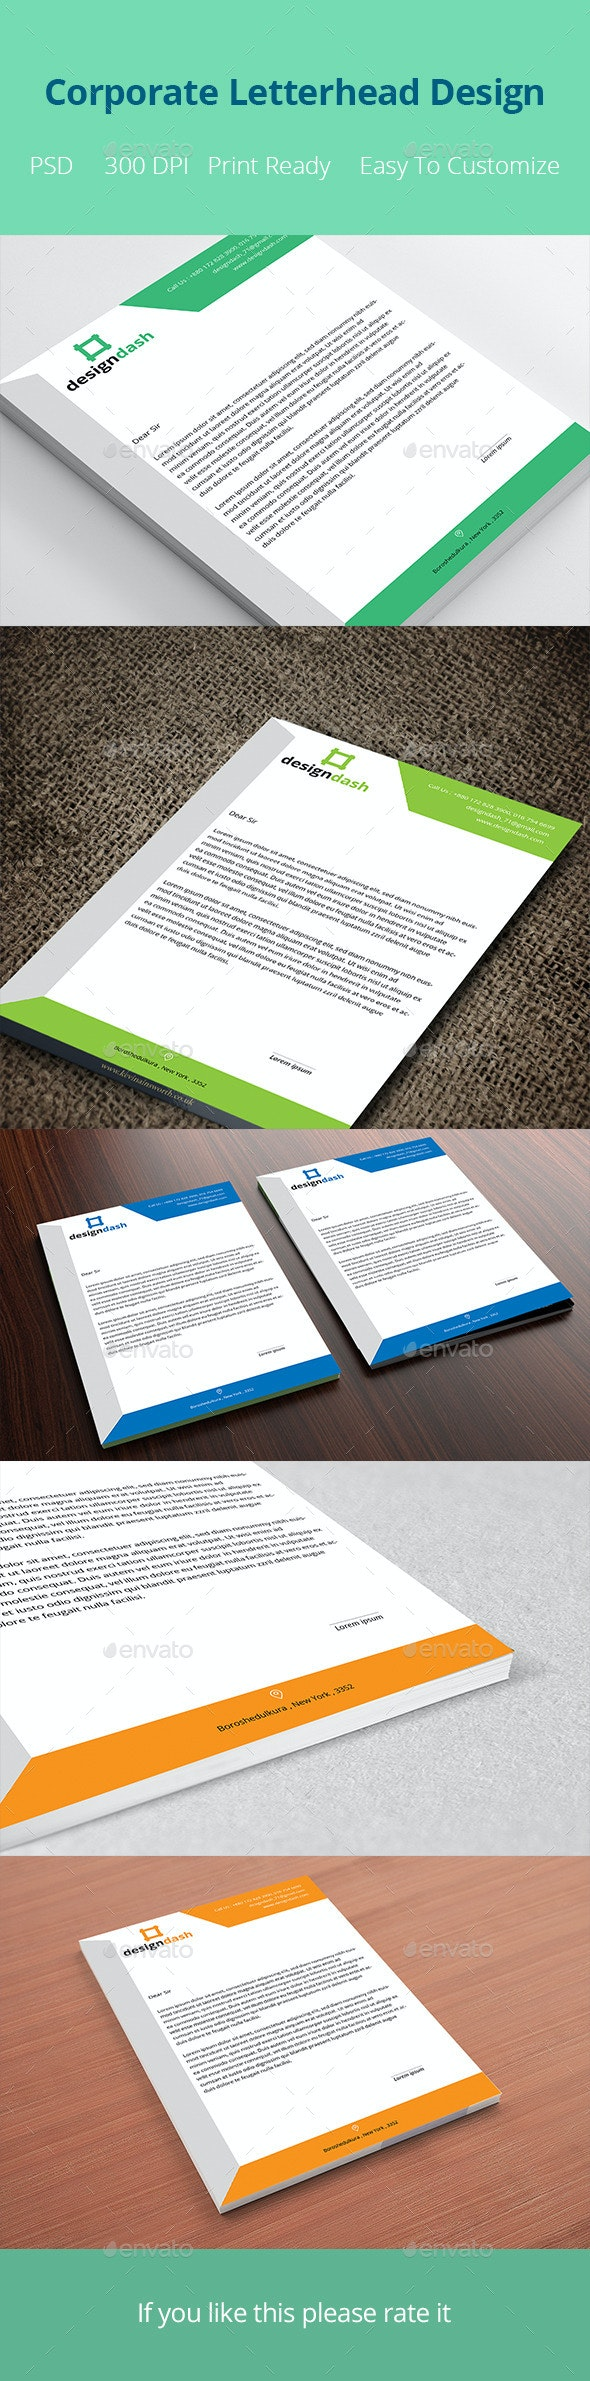 Corporate Letterhead Design Template - Stationery Print Templates